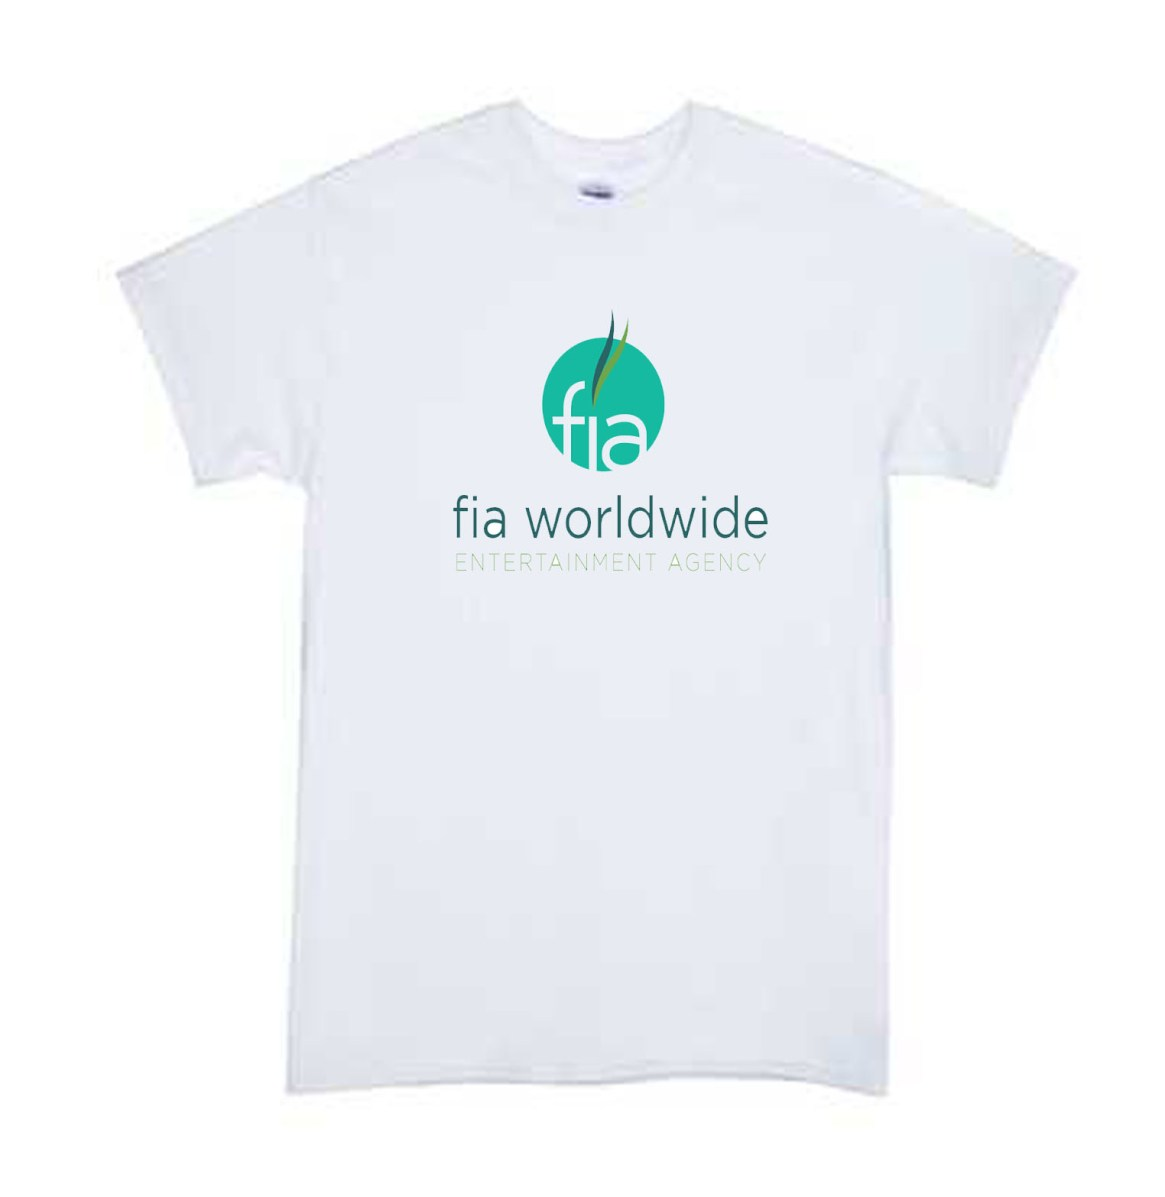 fia tee